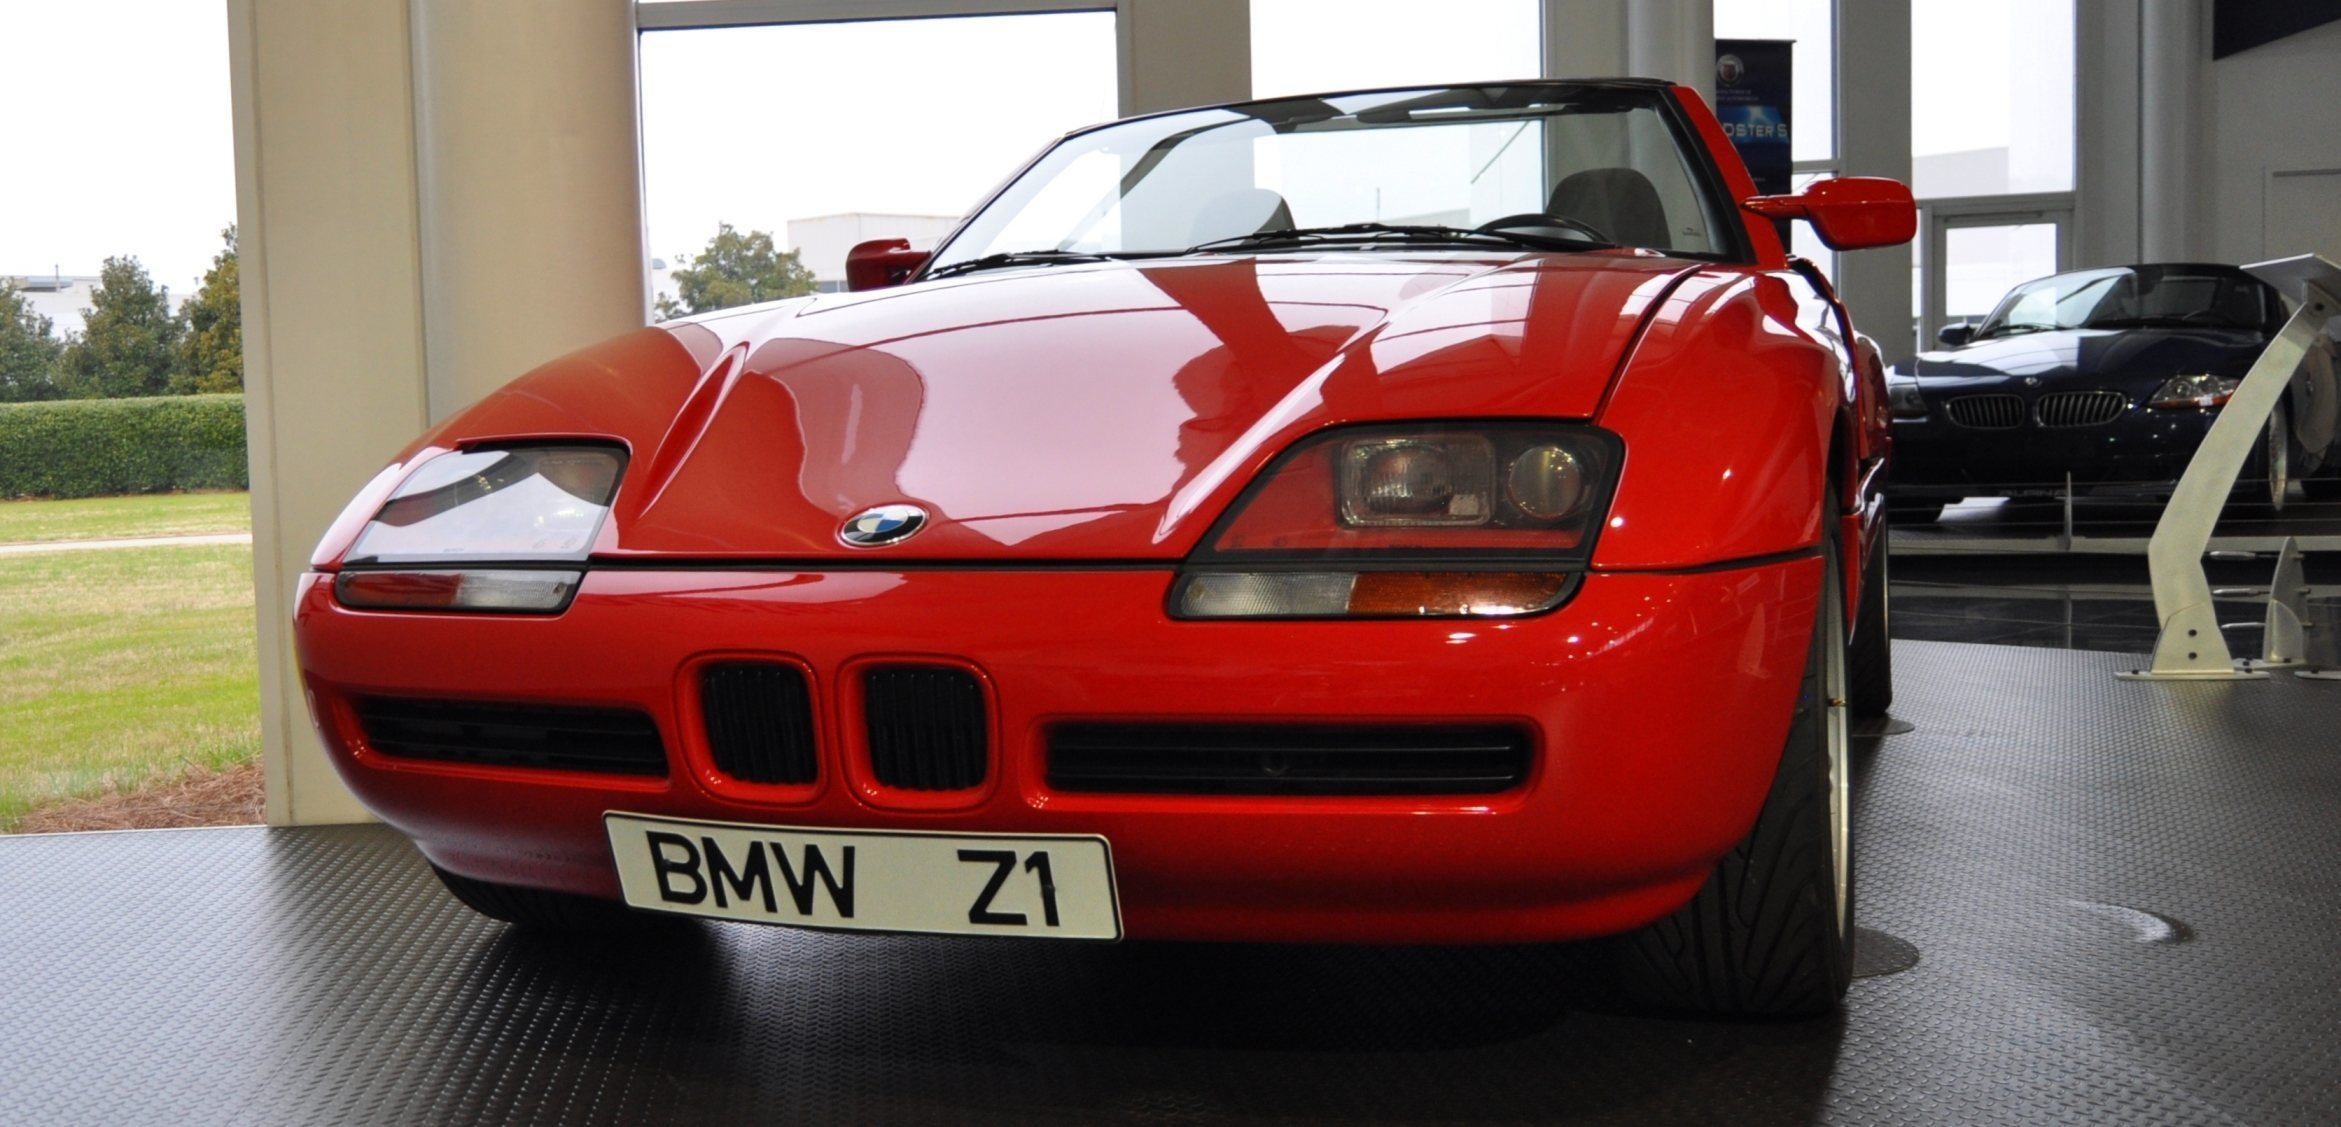 Car-Museums-Showcase-1989-BMW-Z1-at-Zentrum-in-Spartanburg-SC-High-Demand-+-High-Price-Led-Directly-to-US-Built-Z3-9 Stunning Bmw Z1 Hardtop for Sale Cars Trend